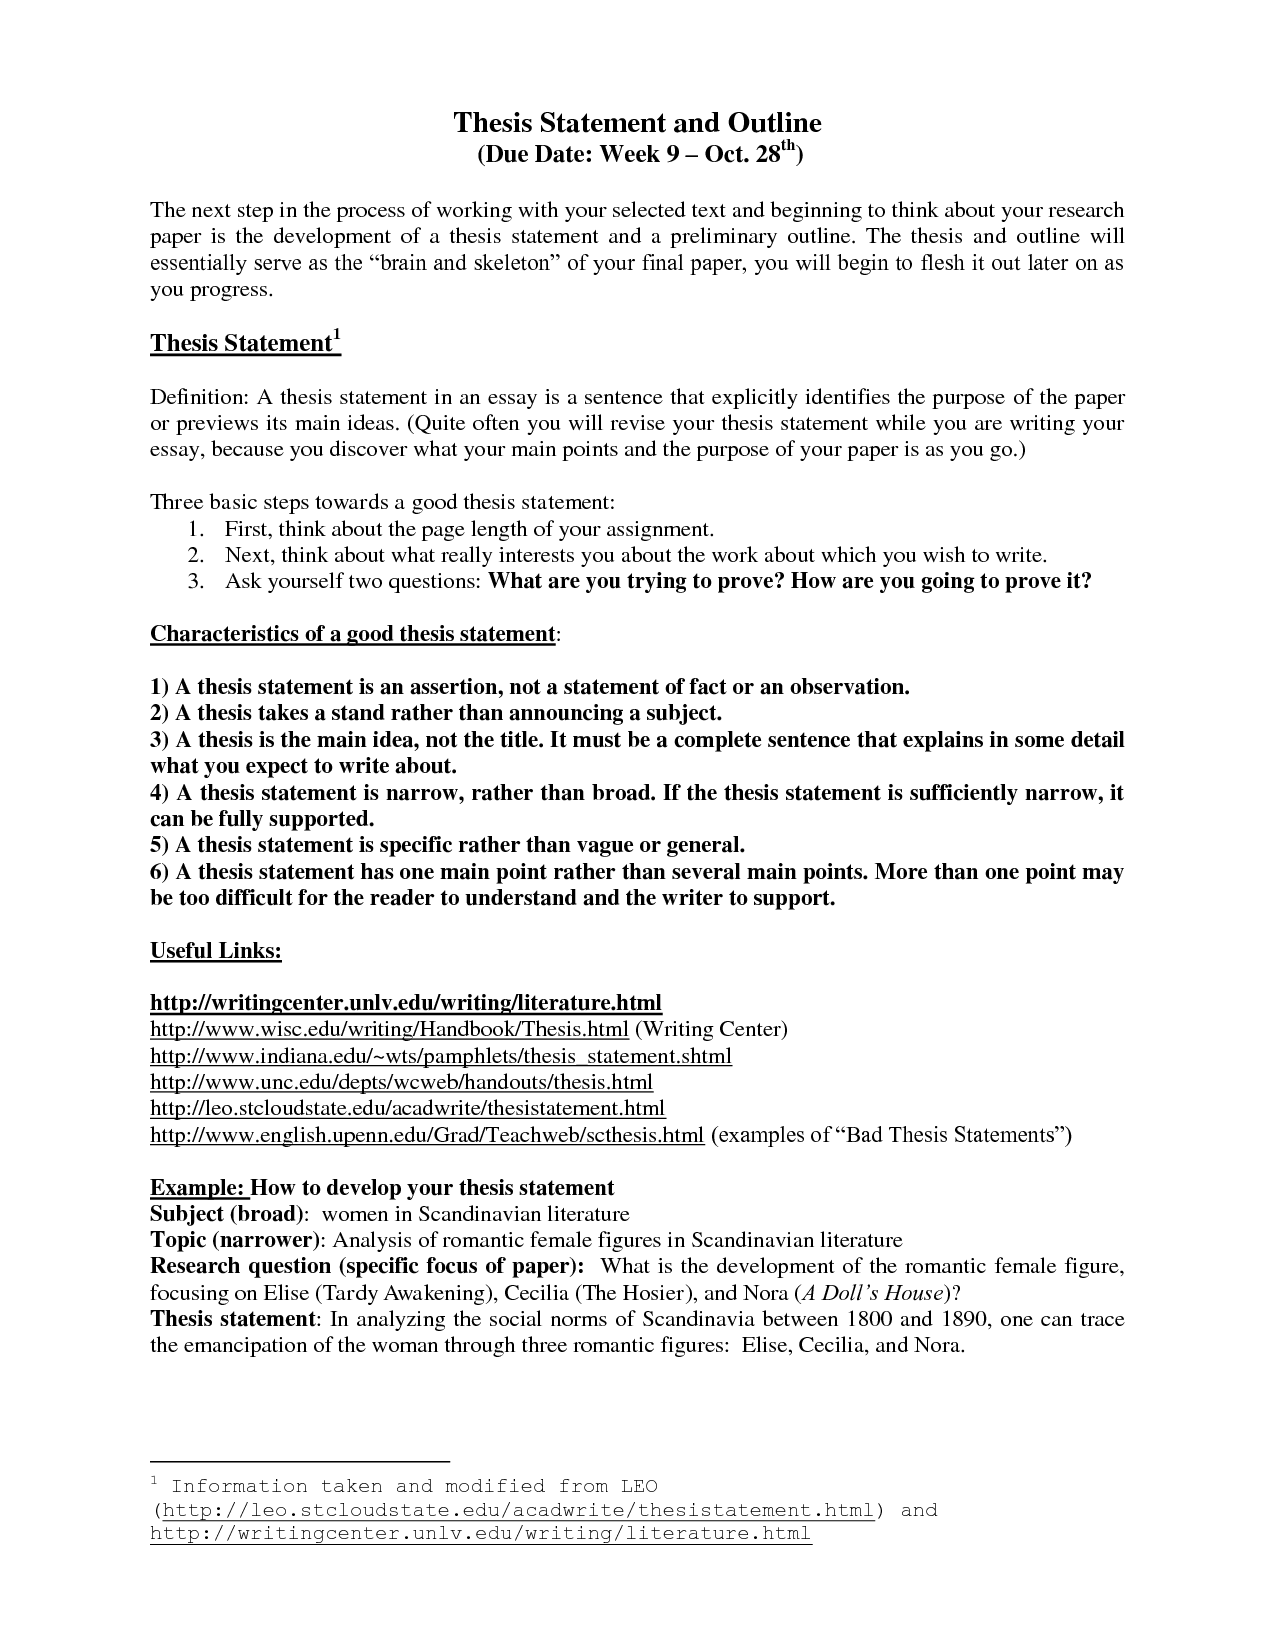 001 Thesis Statement And Outline Template Wx8nmdez Example Research Staggering Paper Full